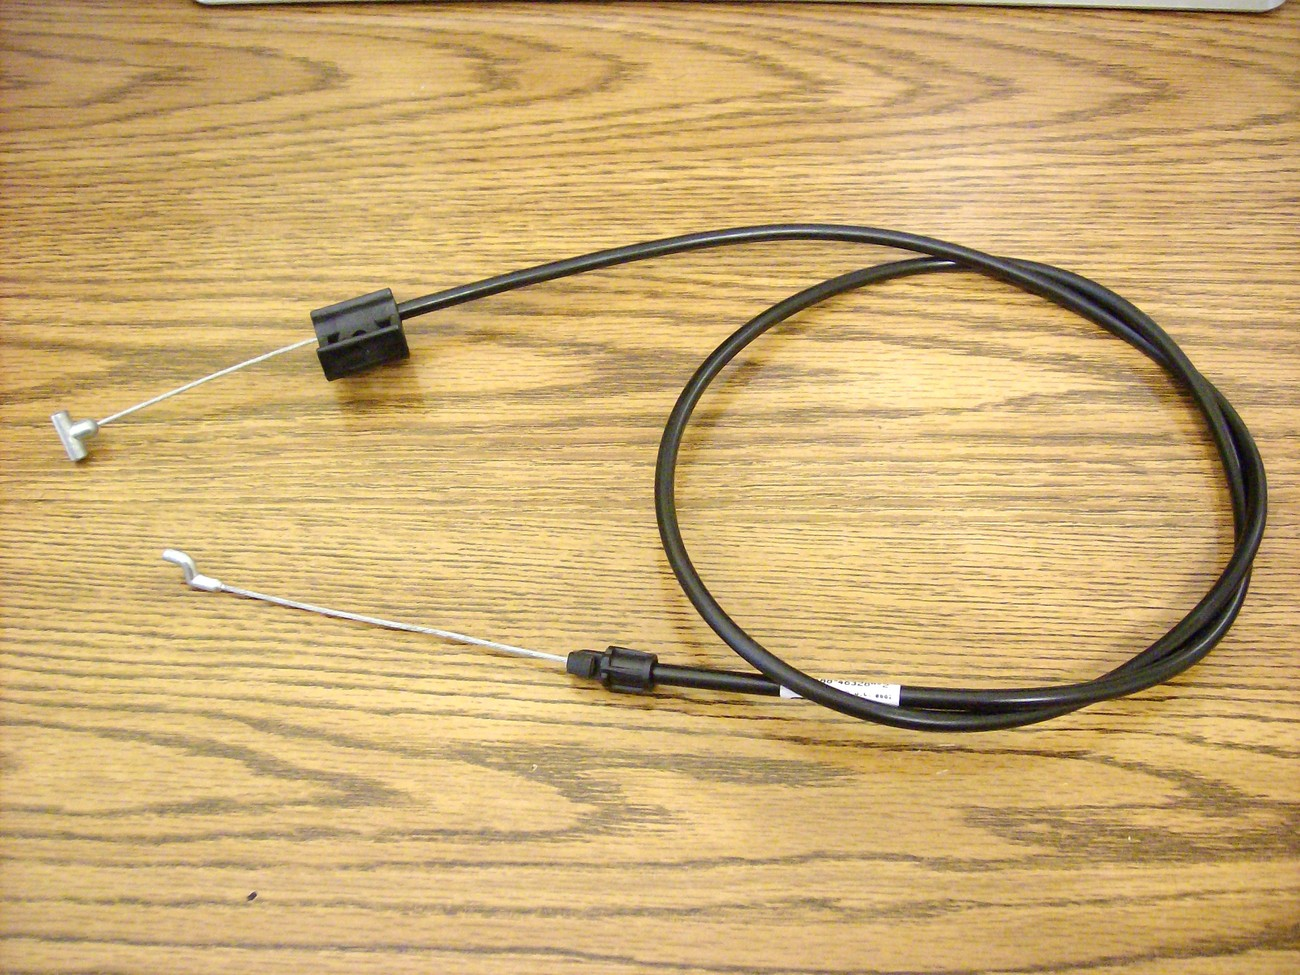 Murray lawn mower engine stop kill run control cable 43881, 43734